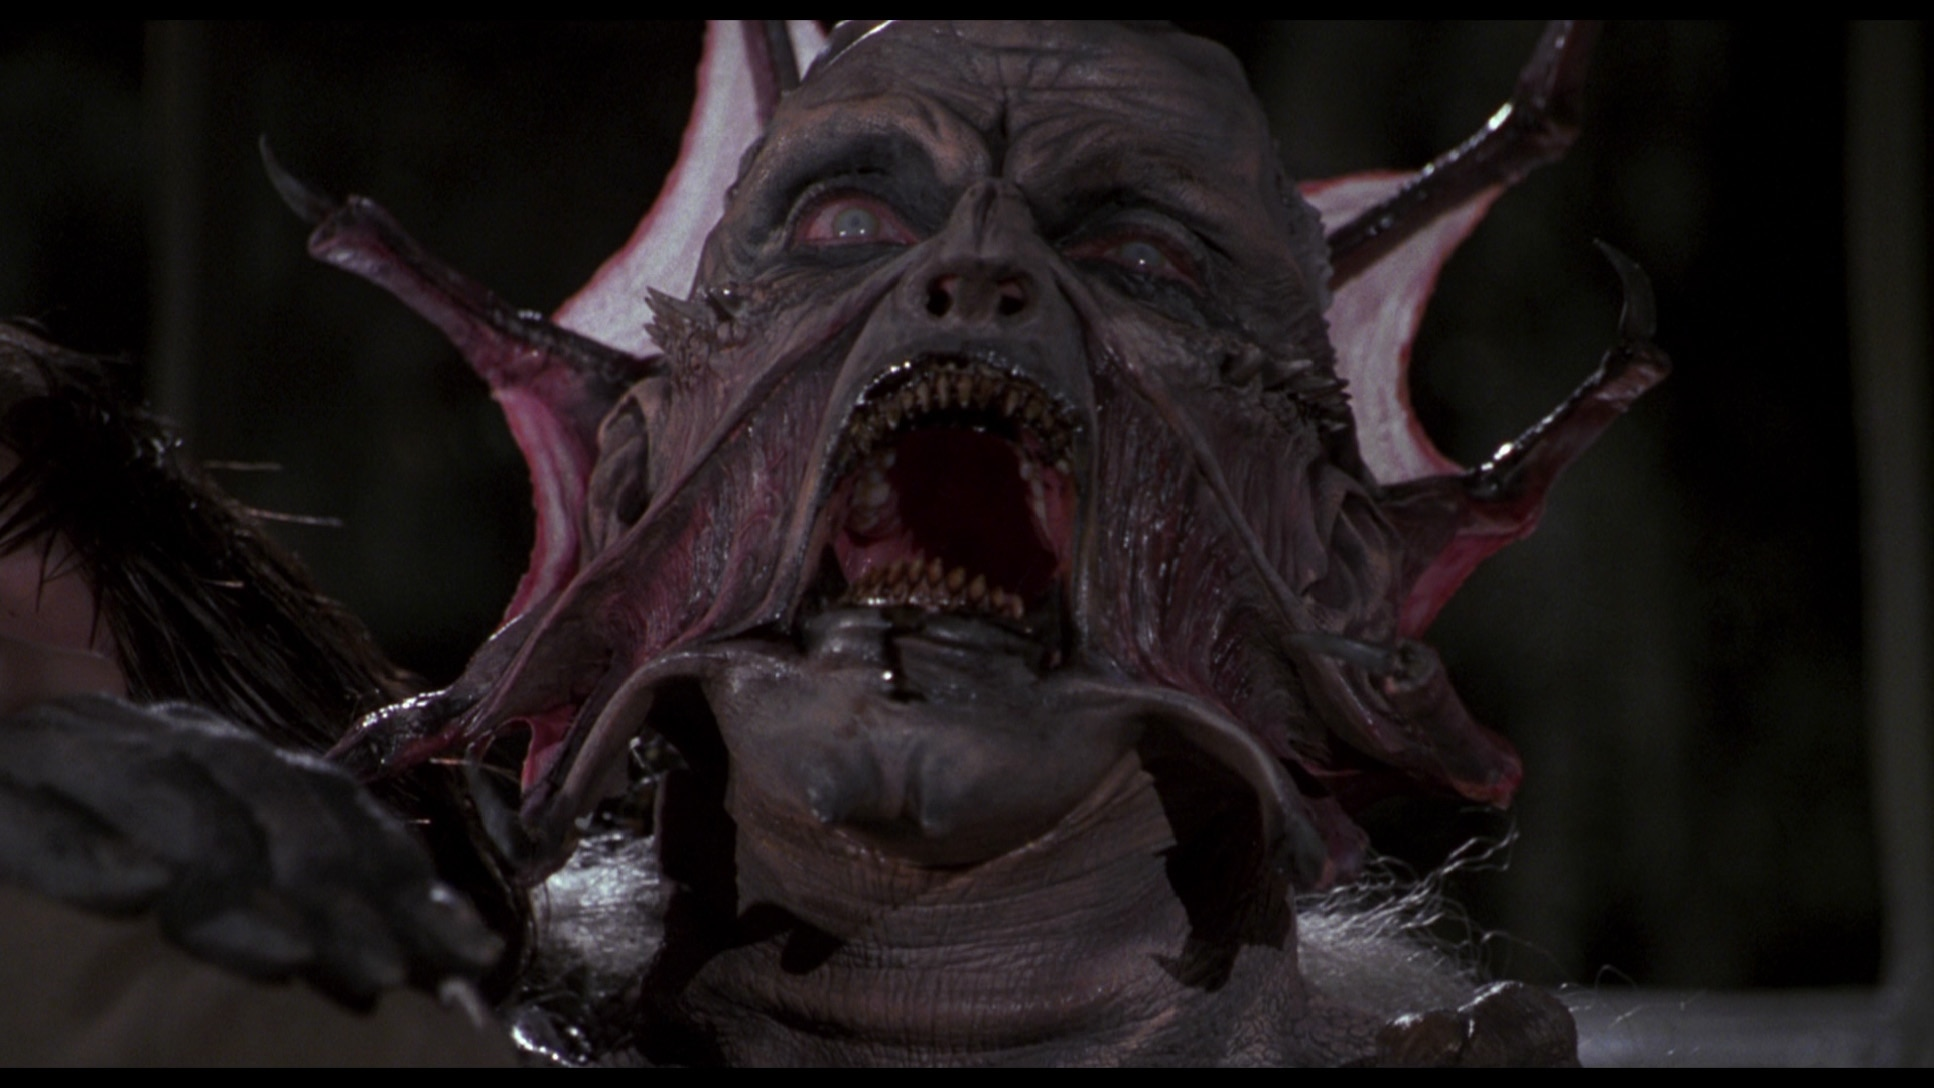 jeepers creepers 3 1 - Jeepers Creepers 3 Screening Cancelled: Nathan Winters Releases Official Statement